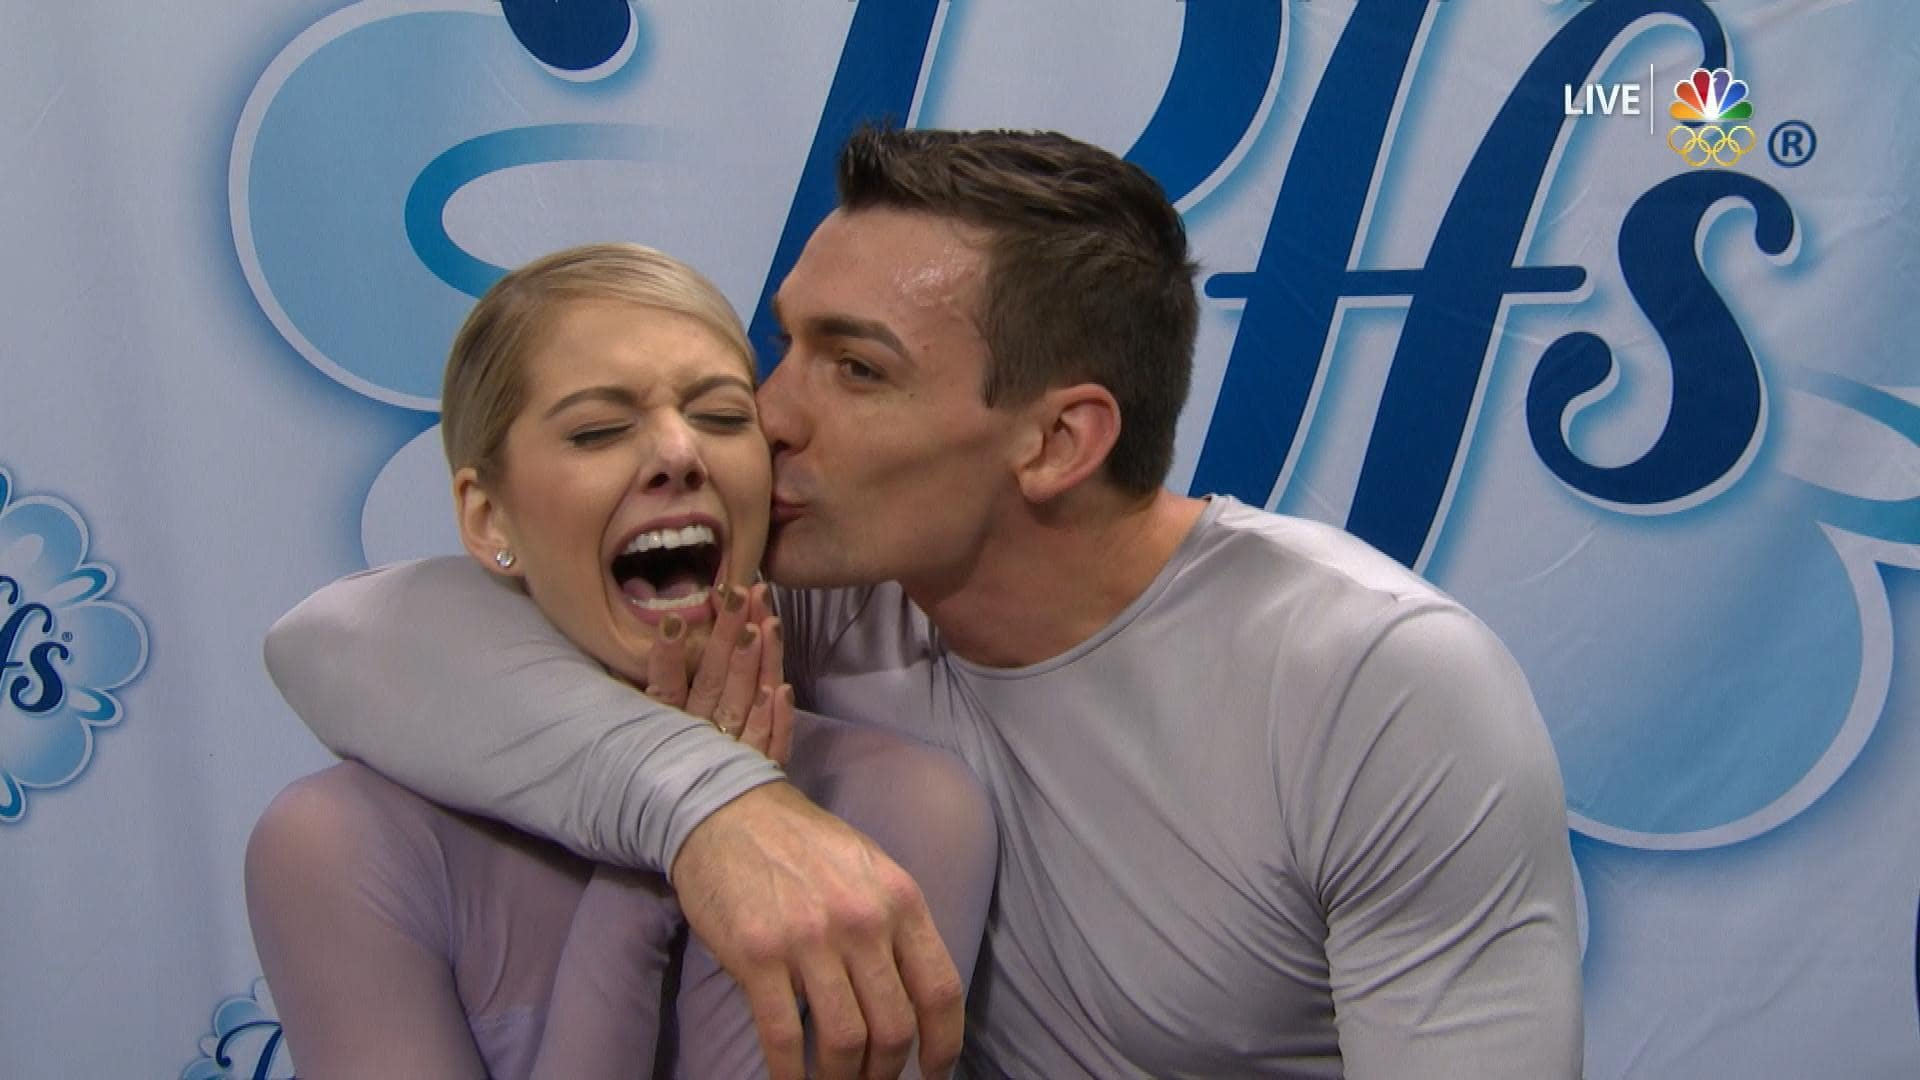 Love on ice: Olympic skating and dating